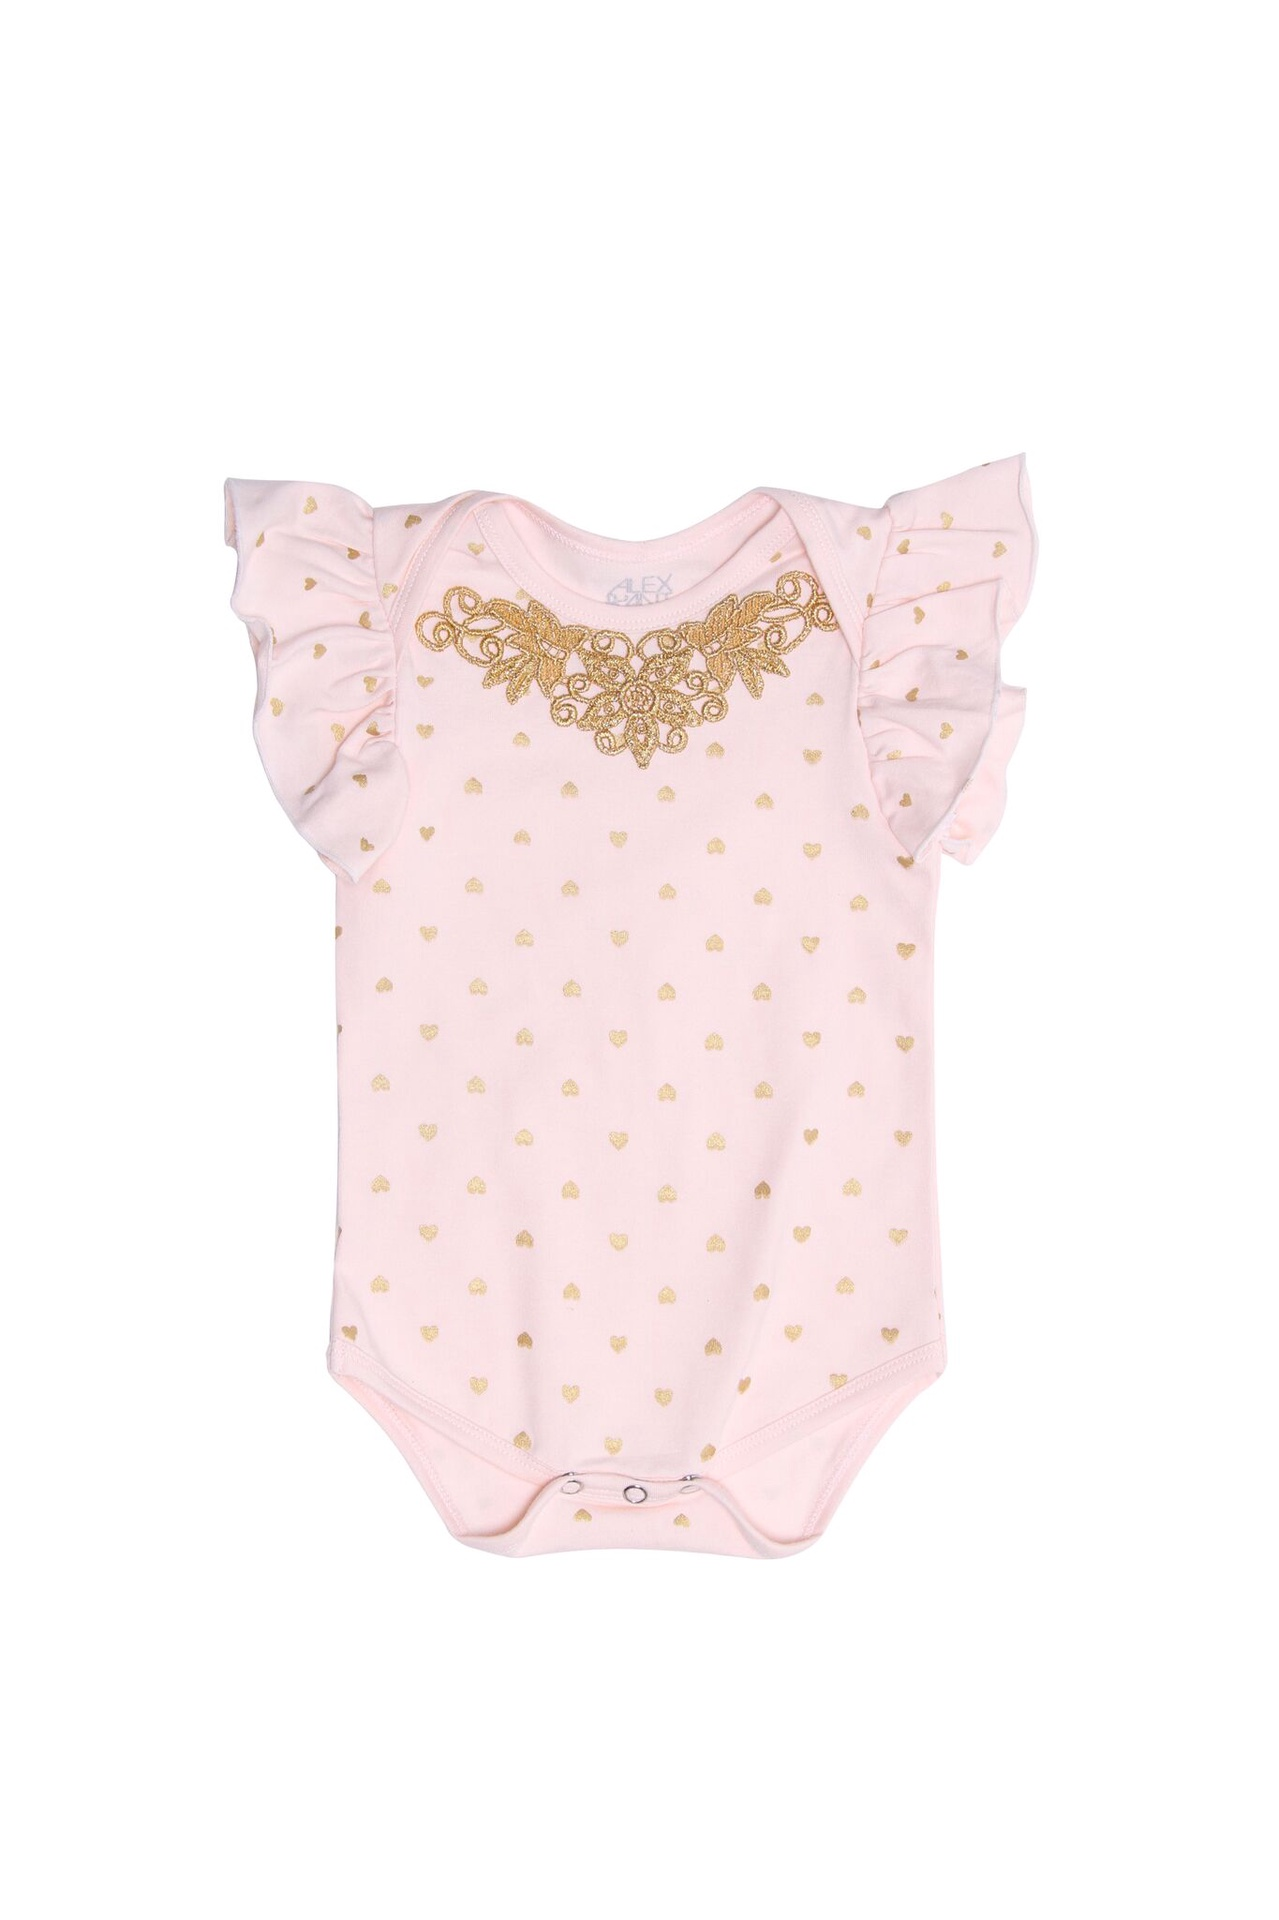 Alex & Ant Faith Heart Romper / pink